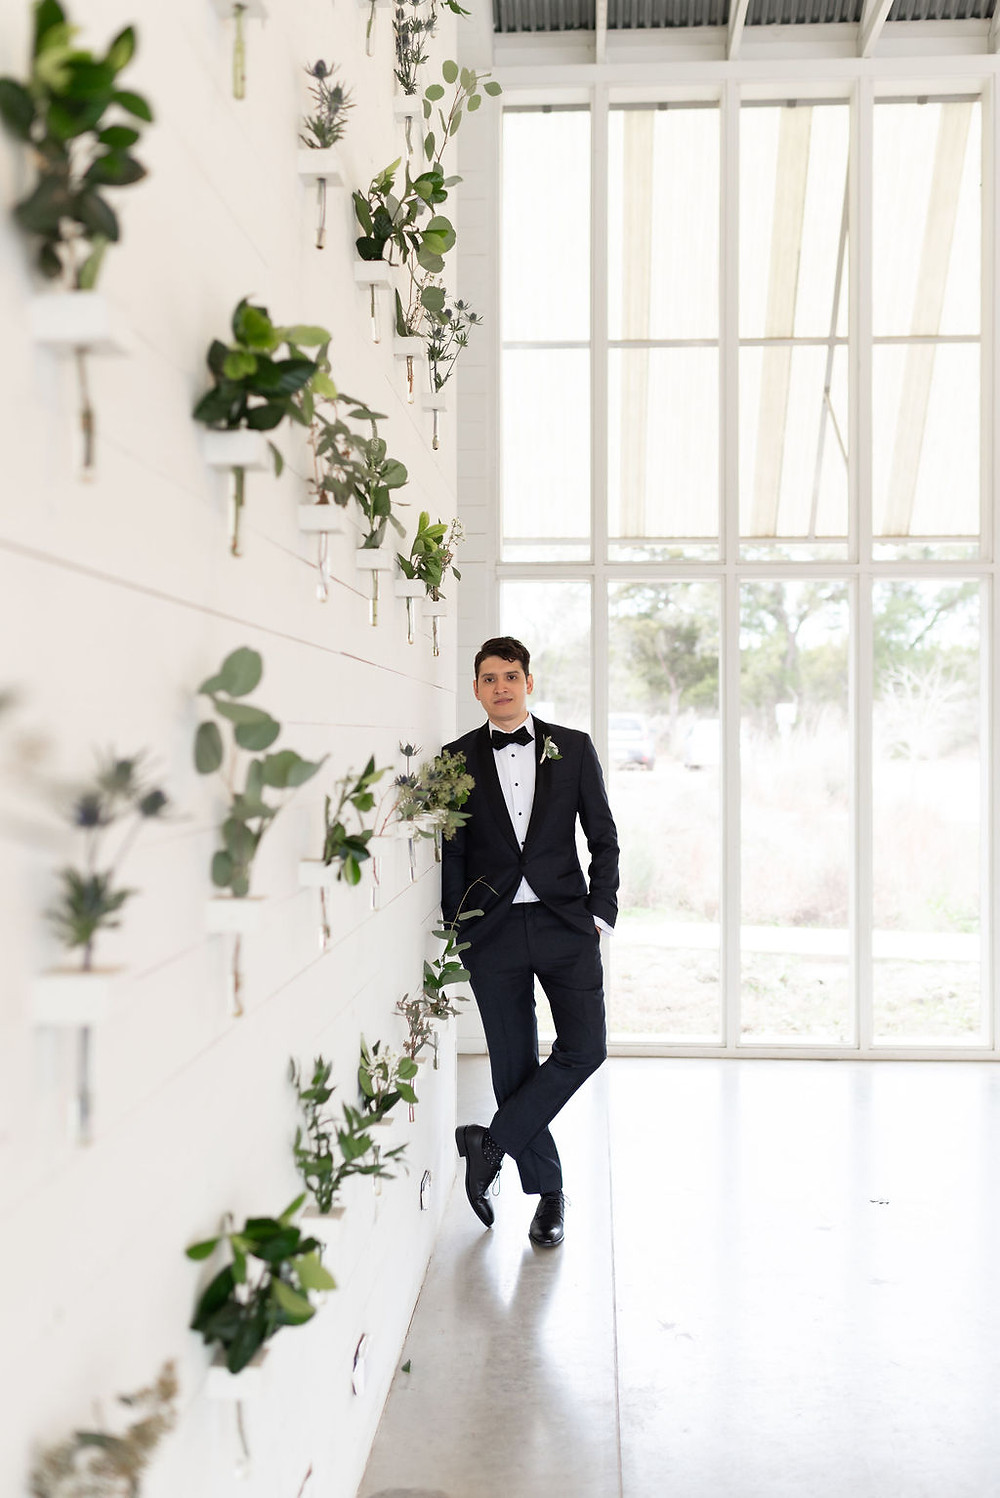 groom portrait leaning against white wall covered in plants